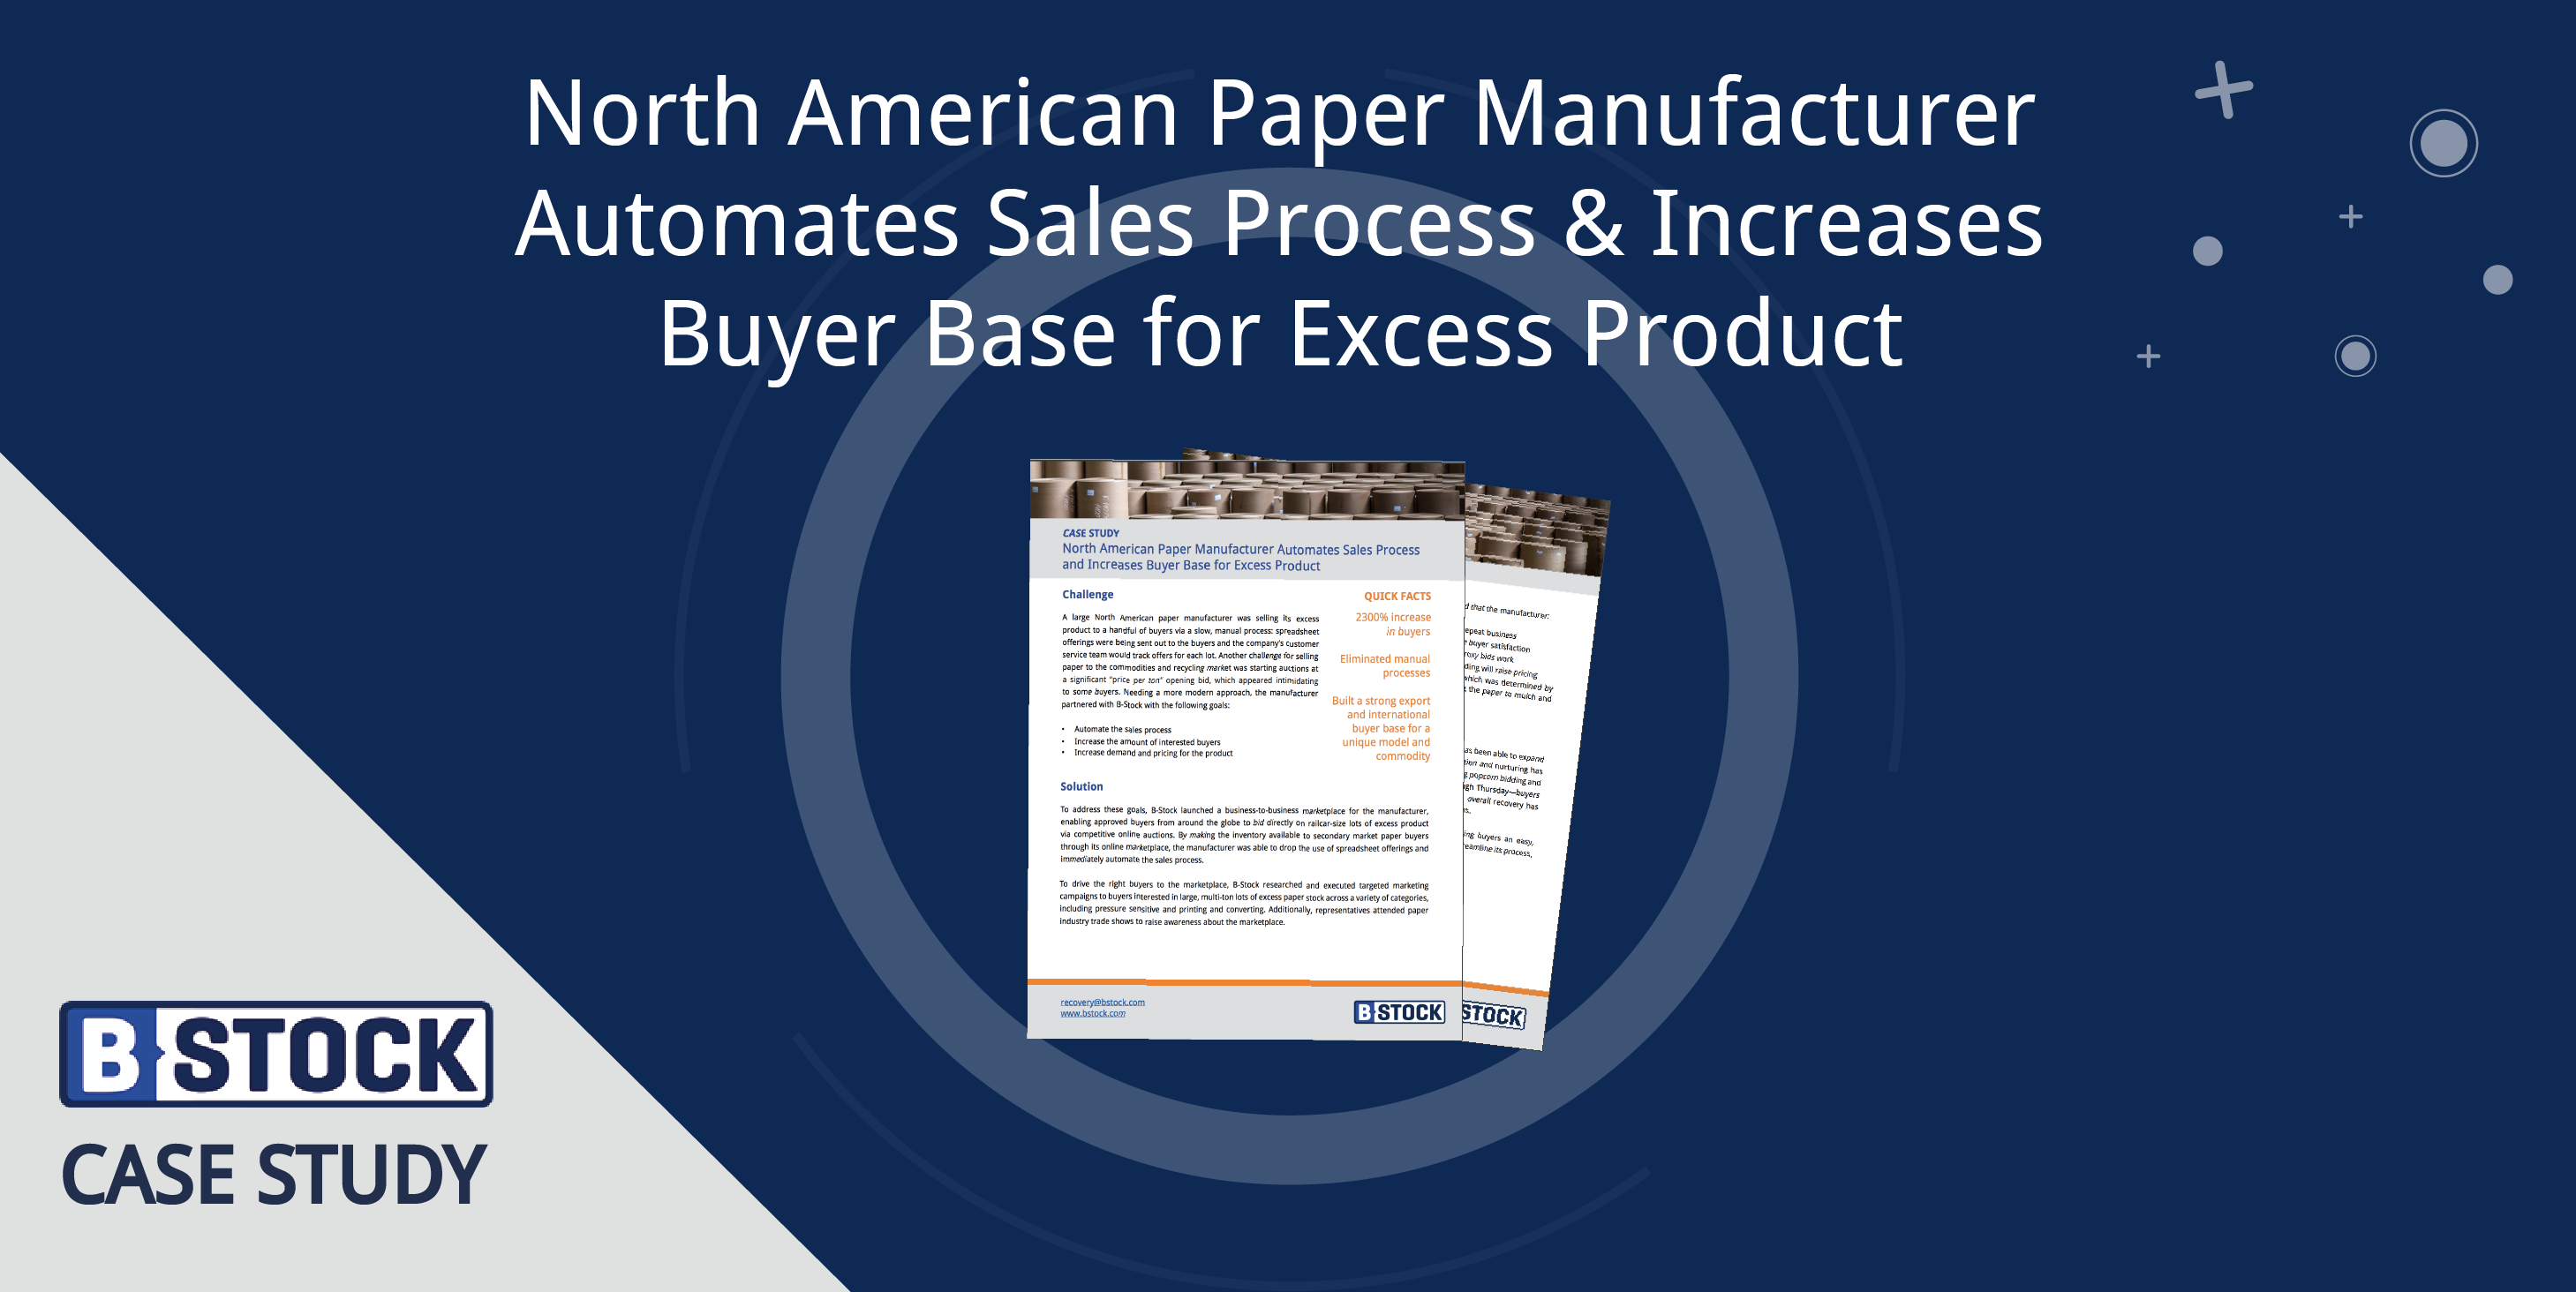 North American Paper Manufacturer Automates Sales Process and Increases Buyer Base for Excess Product